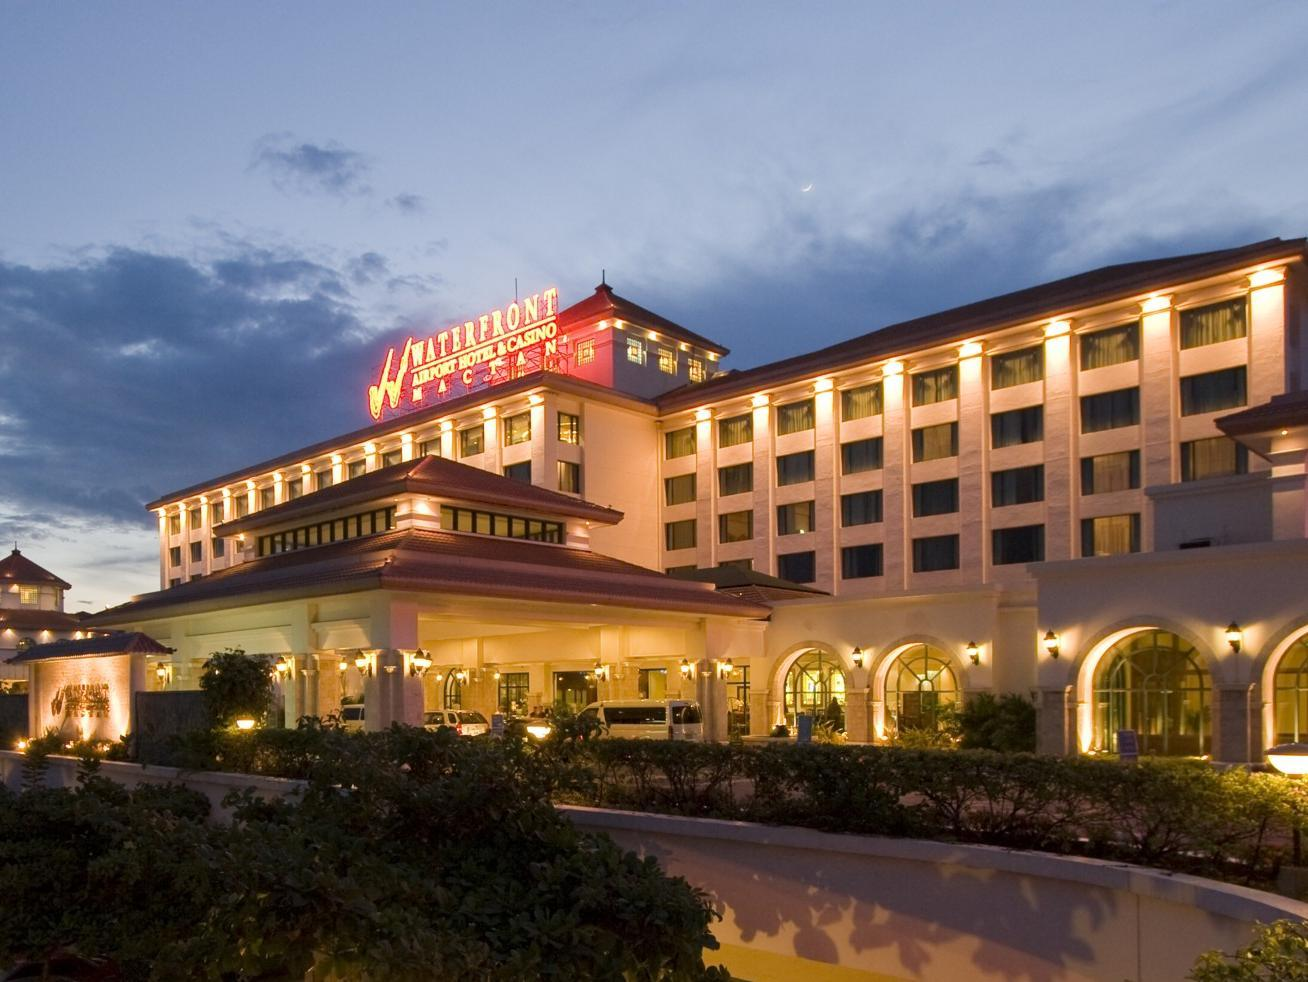 Waterfront Airport Hotel and Casino 세부